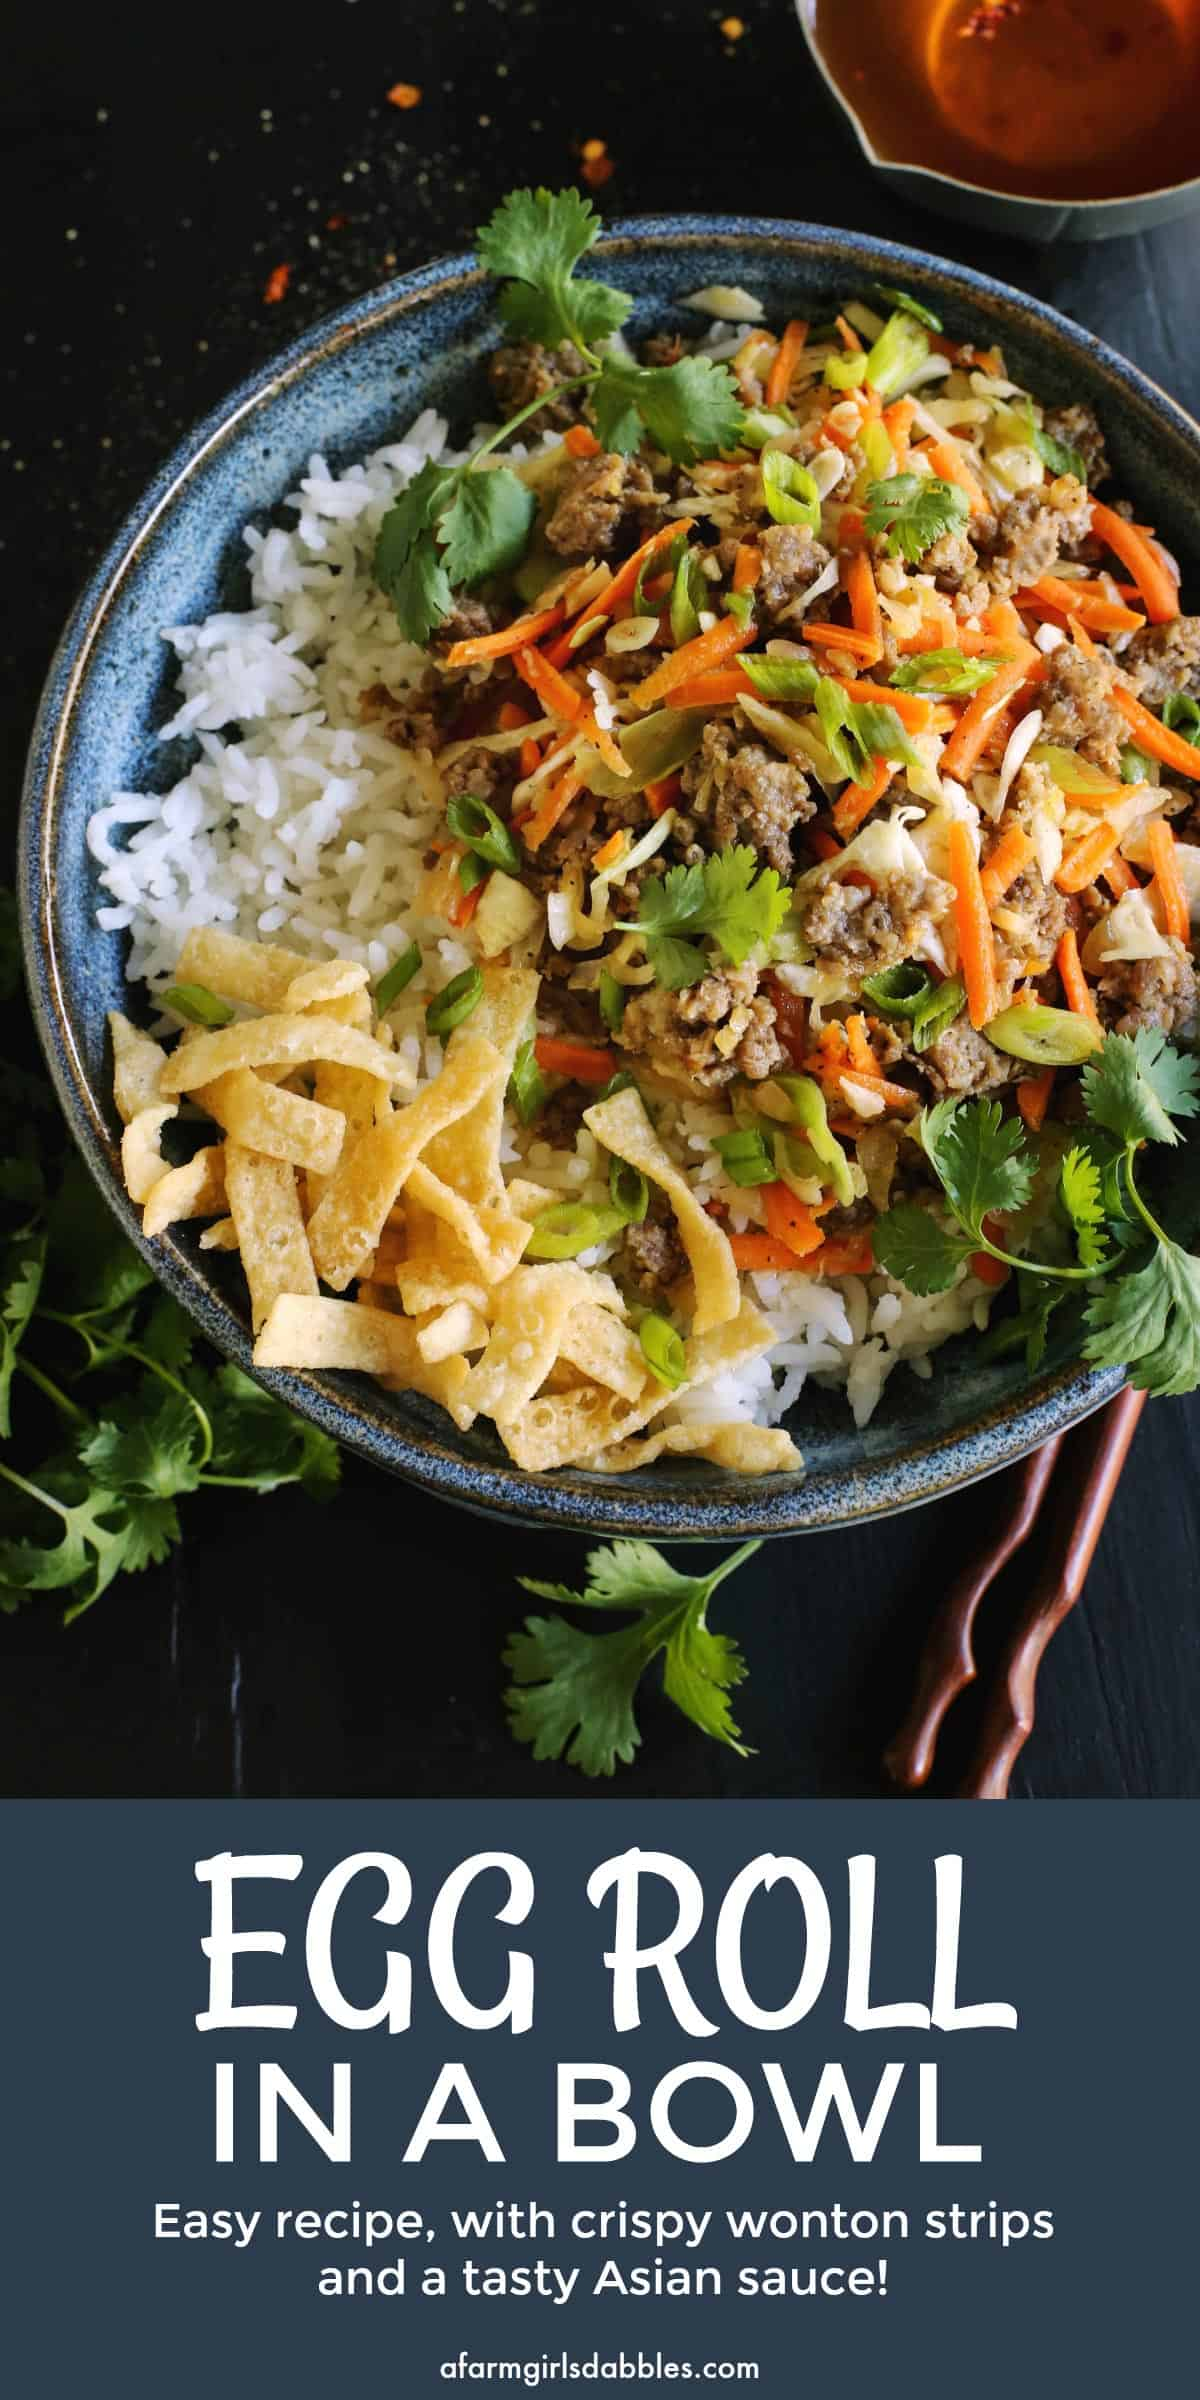 pinterest image of egg roll flavors of ground pork, cabbage, and carrots served in a bowl over white rice